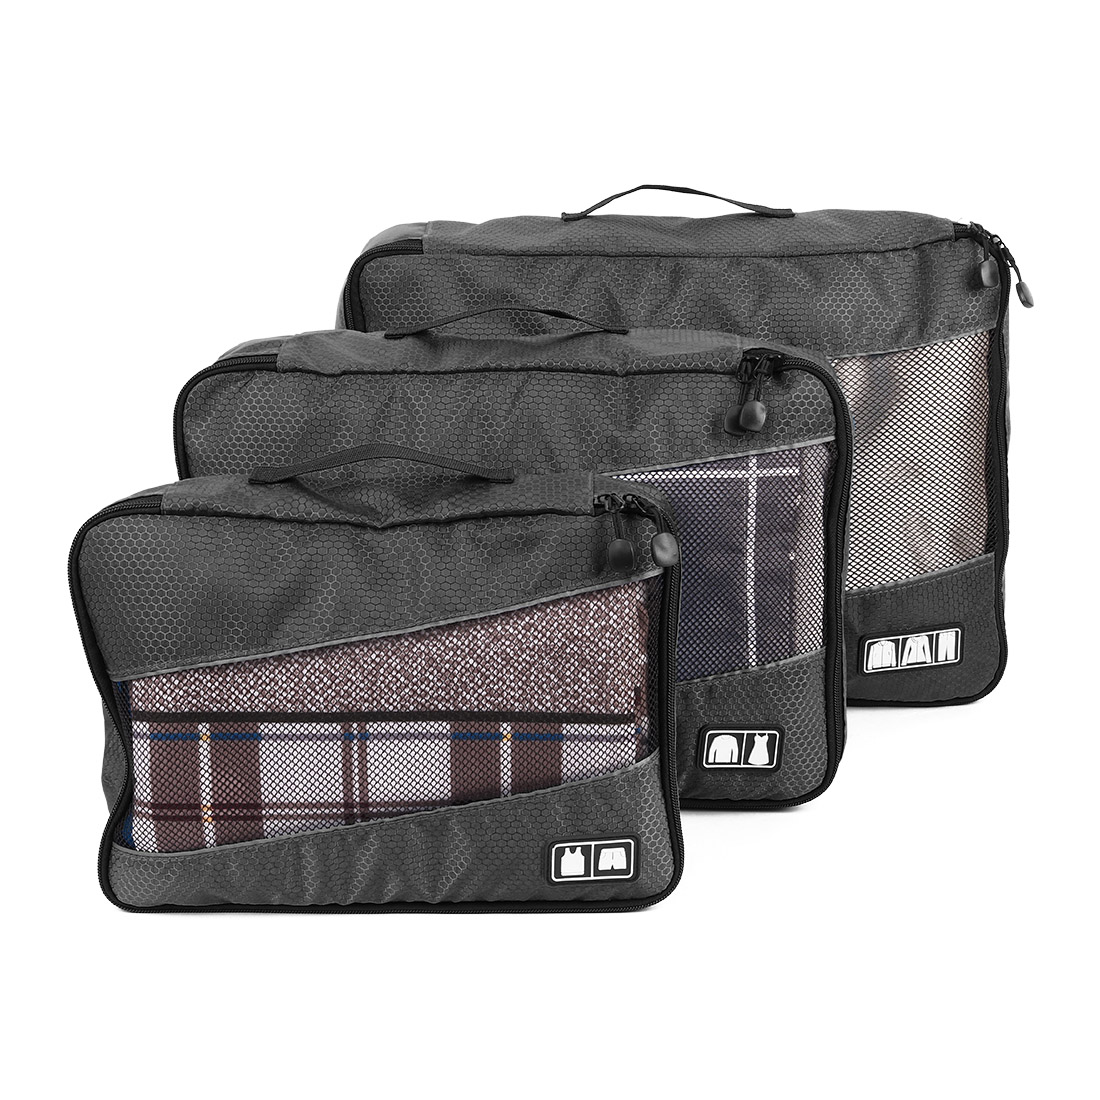 3 in 1 Travel Packing Cube Clothes Storage Suitcase Bags Luggage Organizer Pouch Black